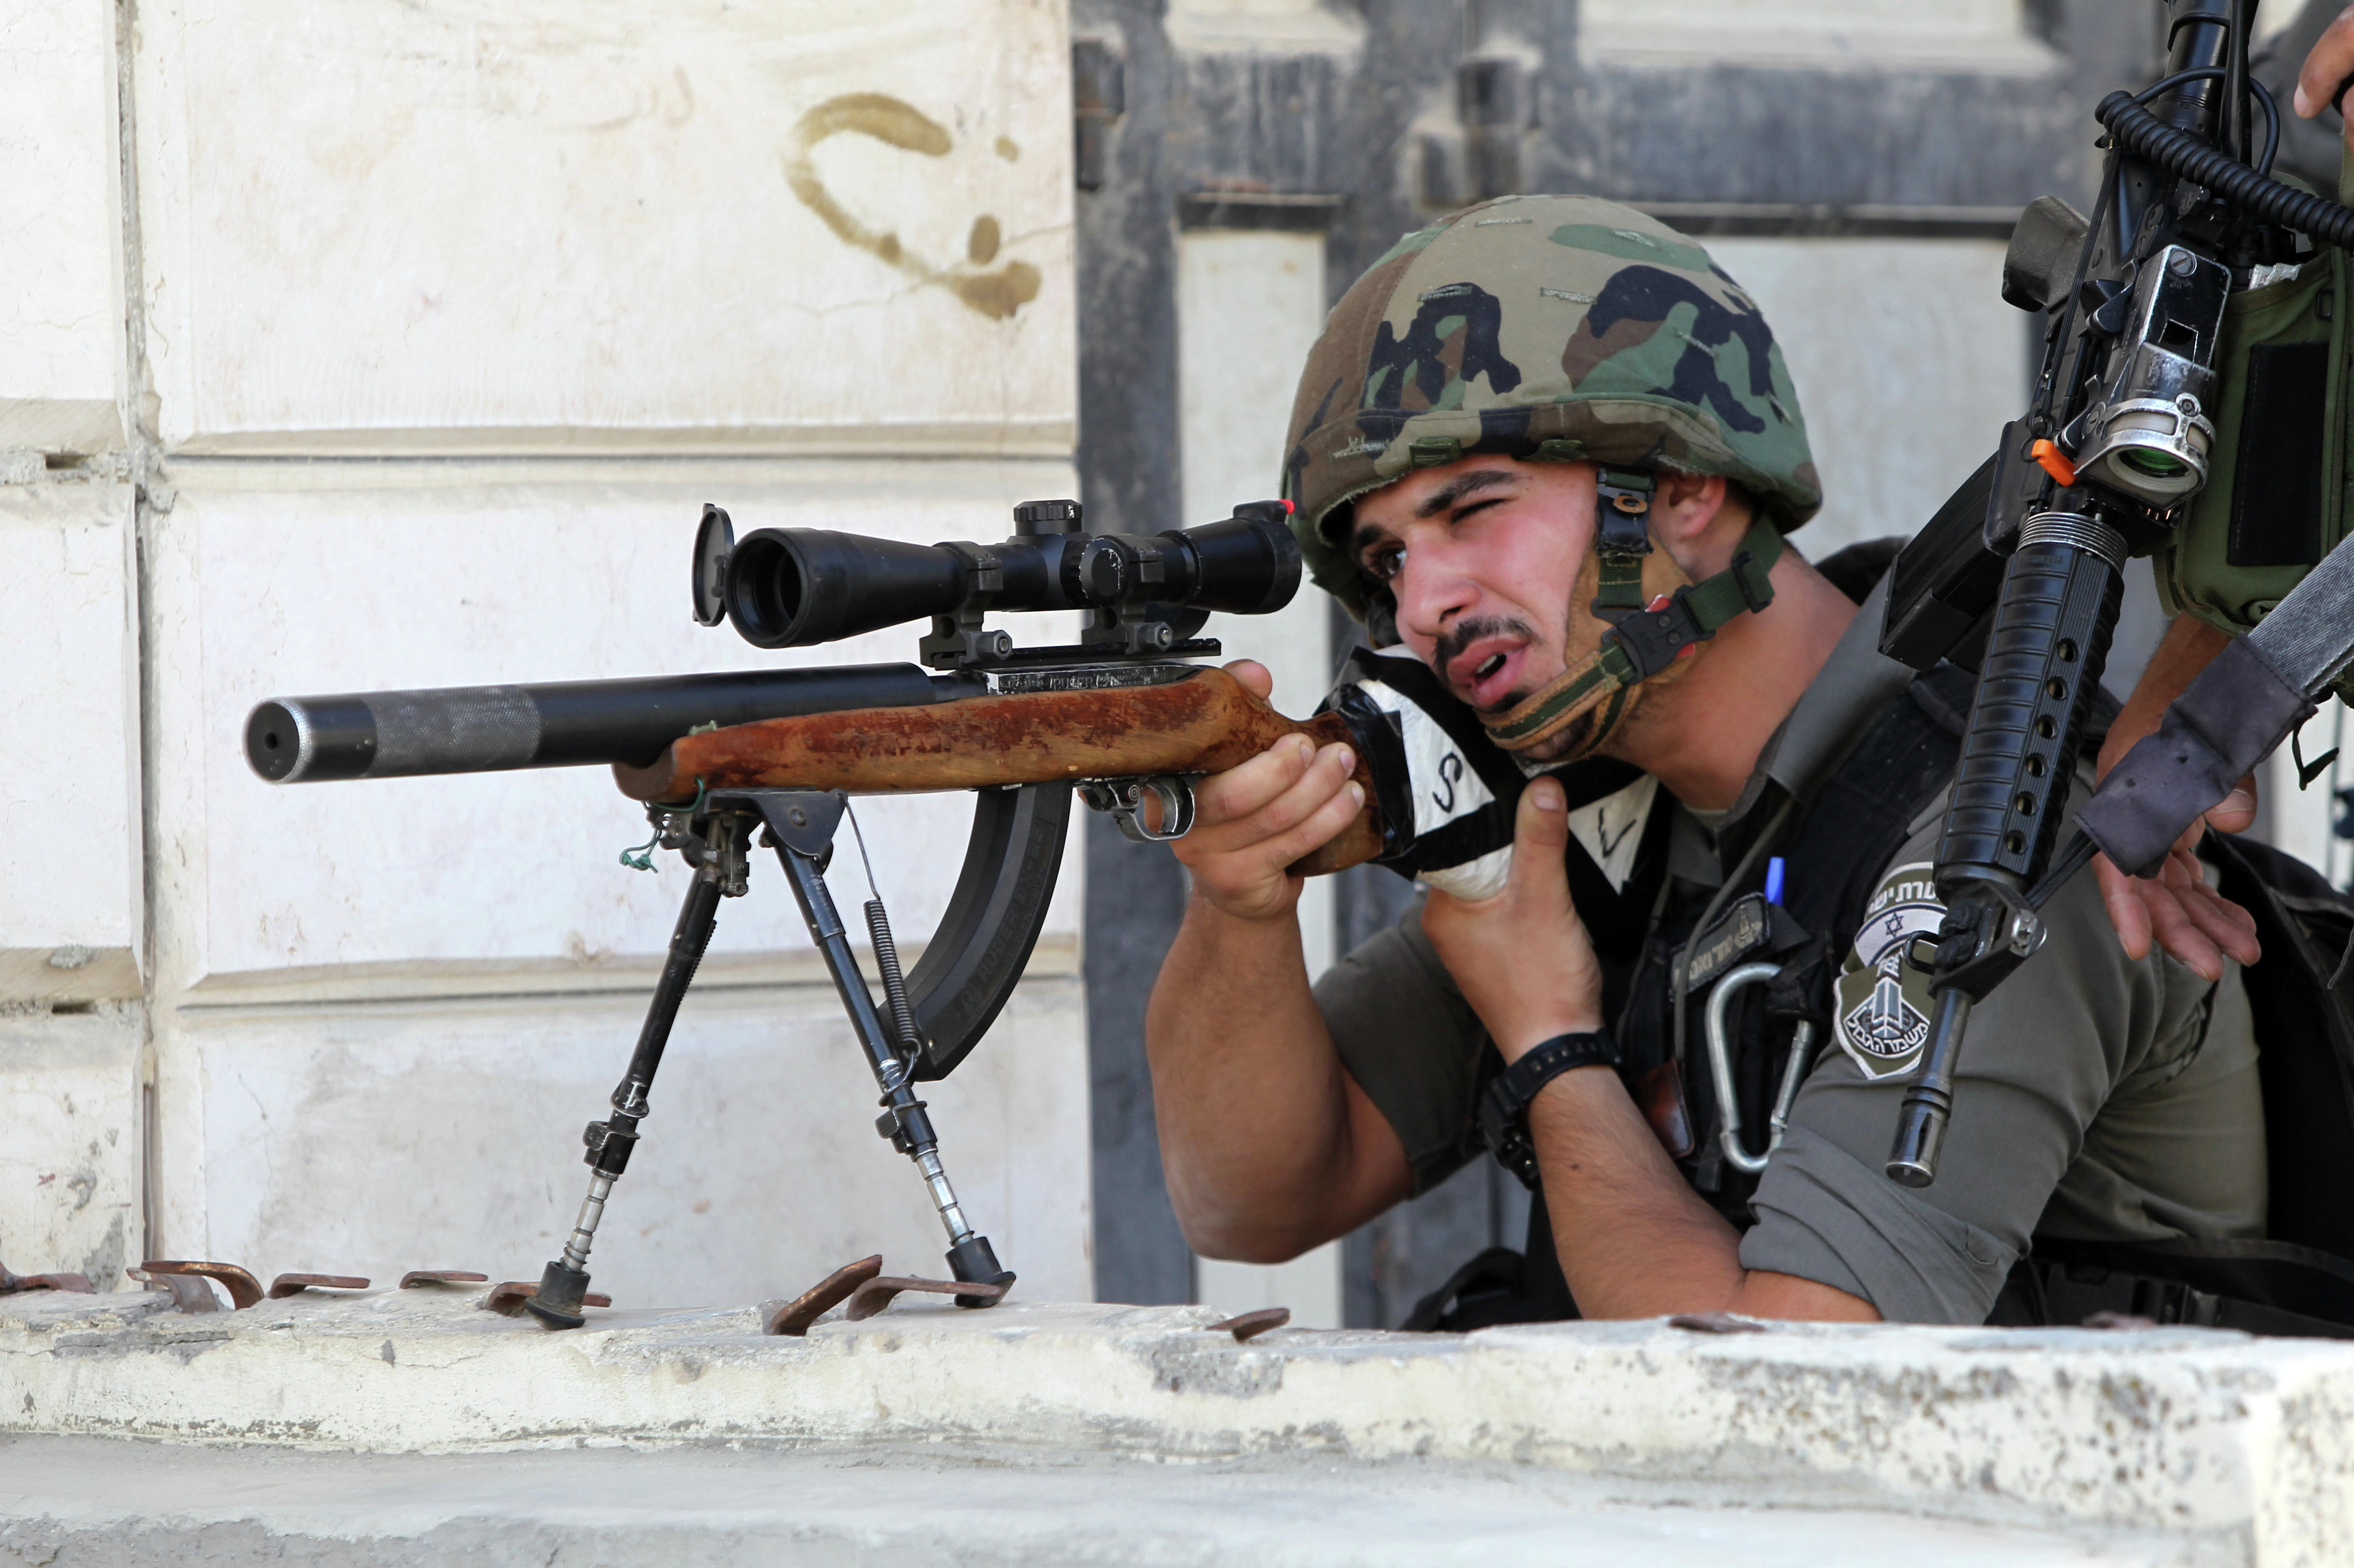 An Israeli border guard aims his sniper rifle during clashes with Palestinian protesters following an anti-Israeli protest after the weekly Friday prayers on September 18, 2015 in the Israeli-controlled area called H2, in the West Bank town of Hebron